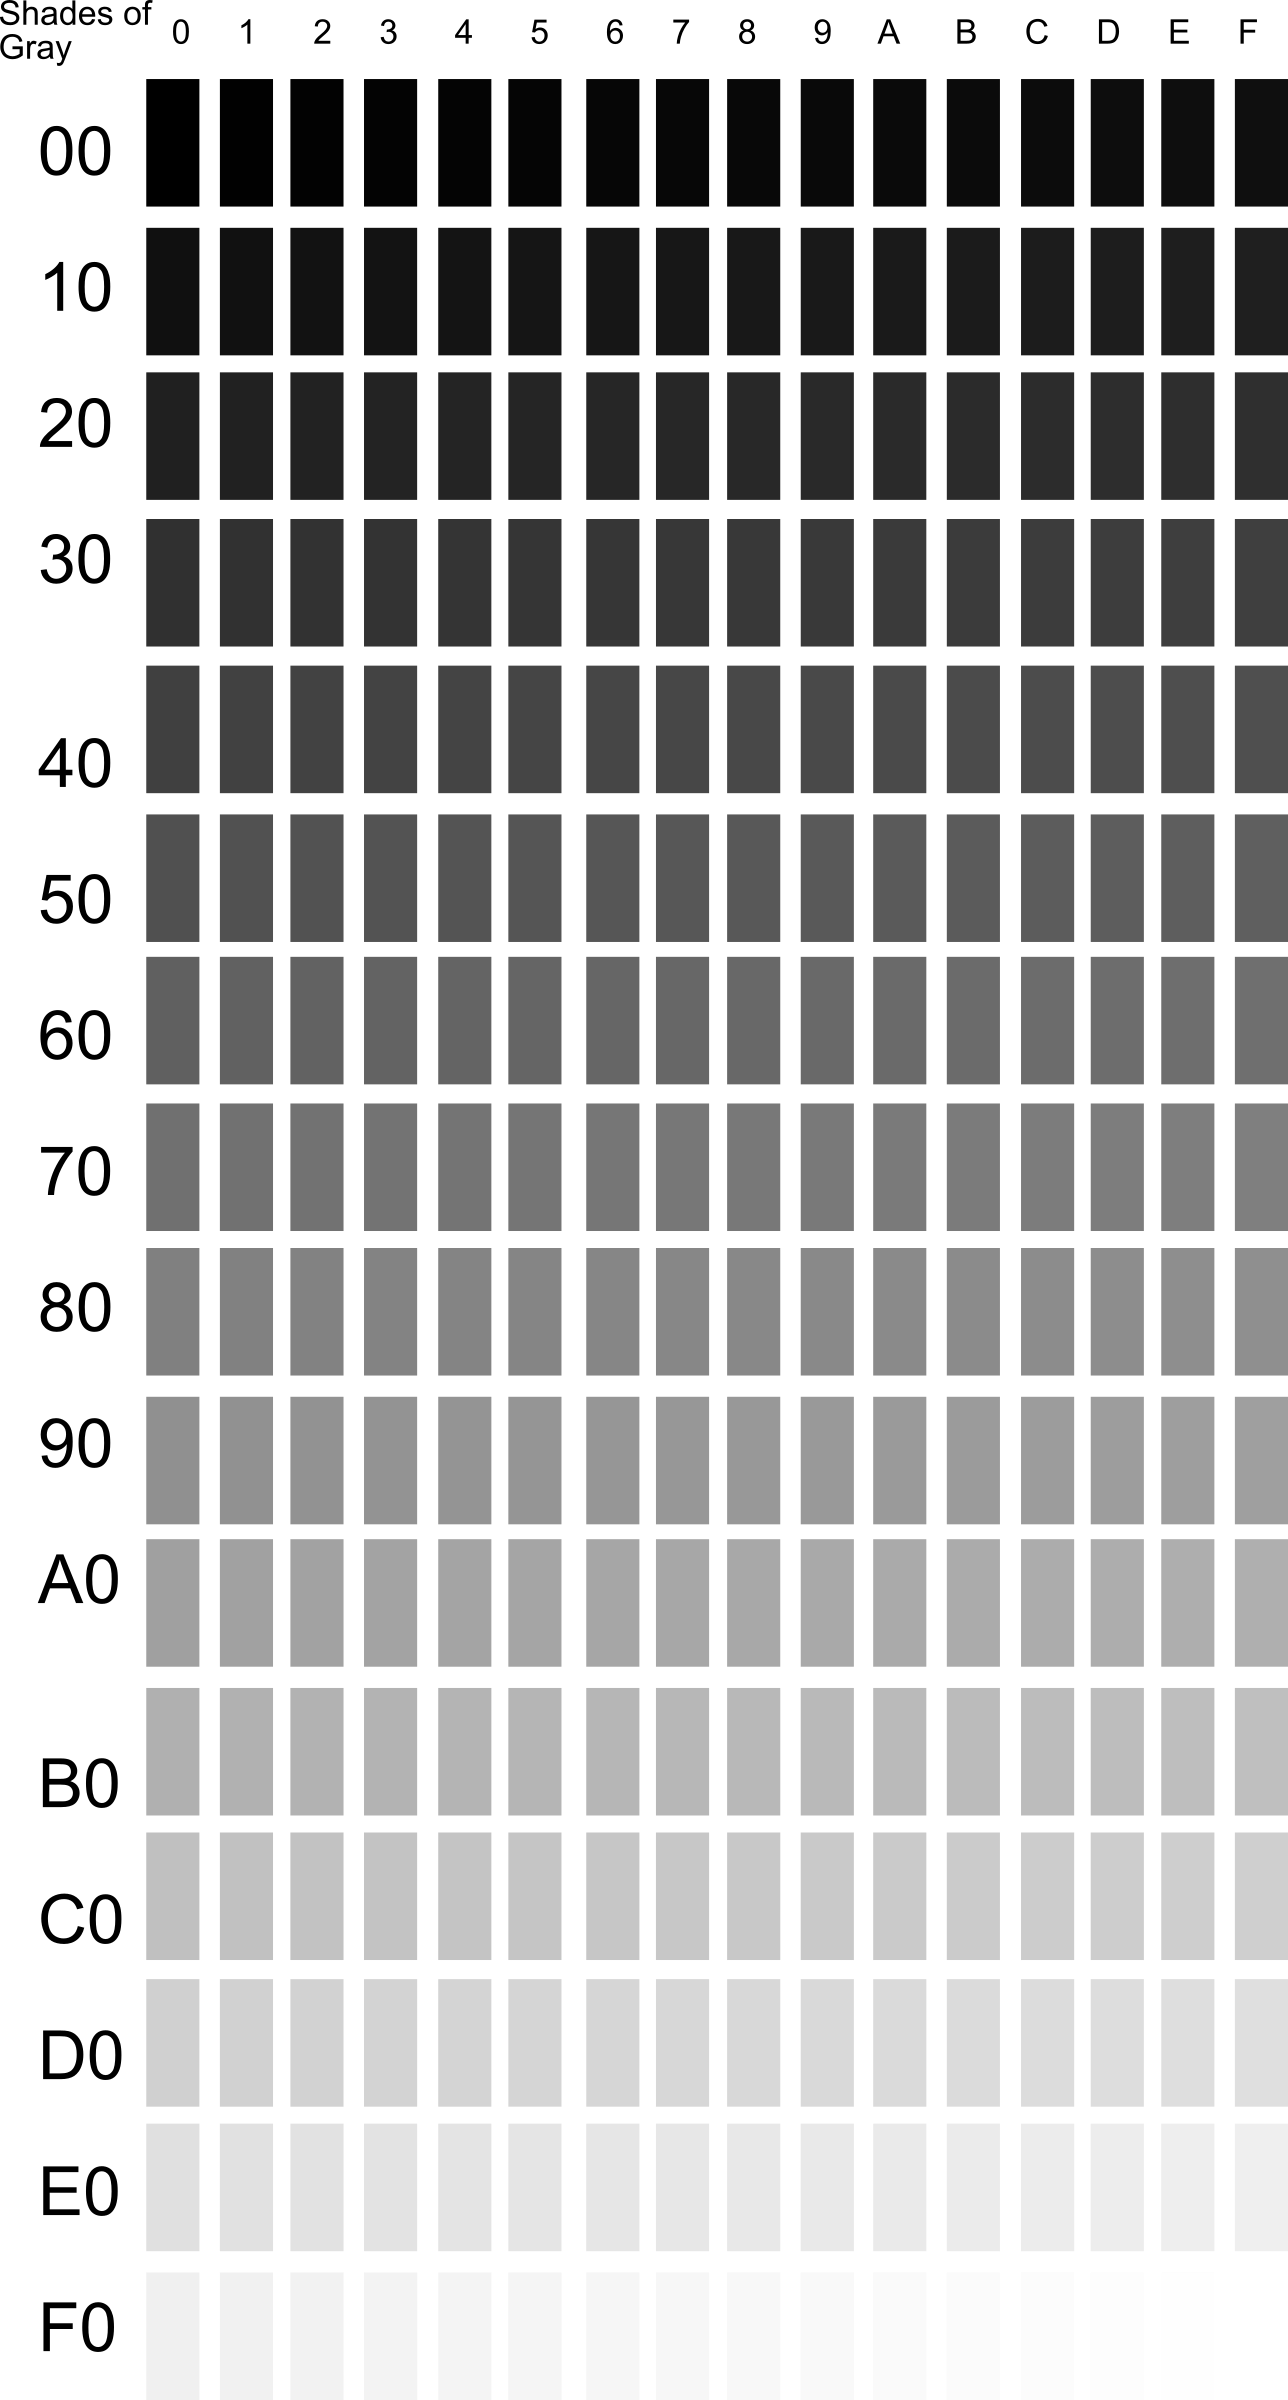 Gray Shades clipart - shades of gray